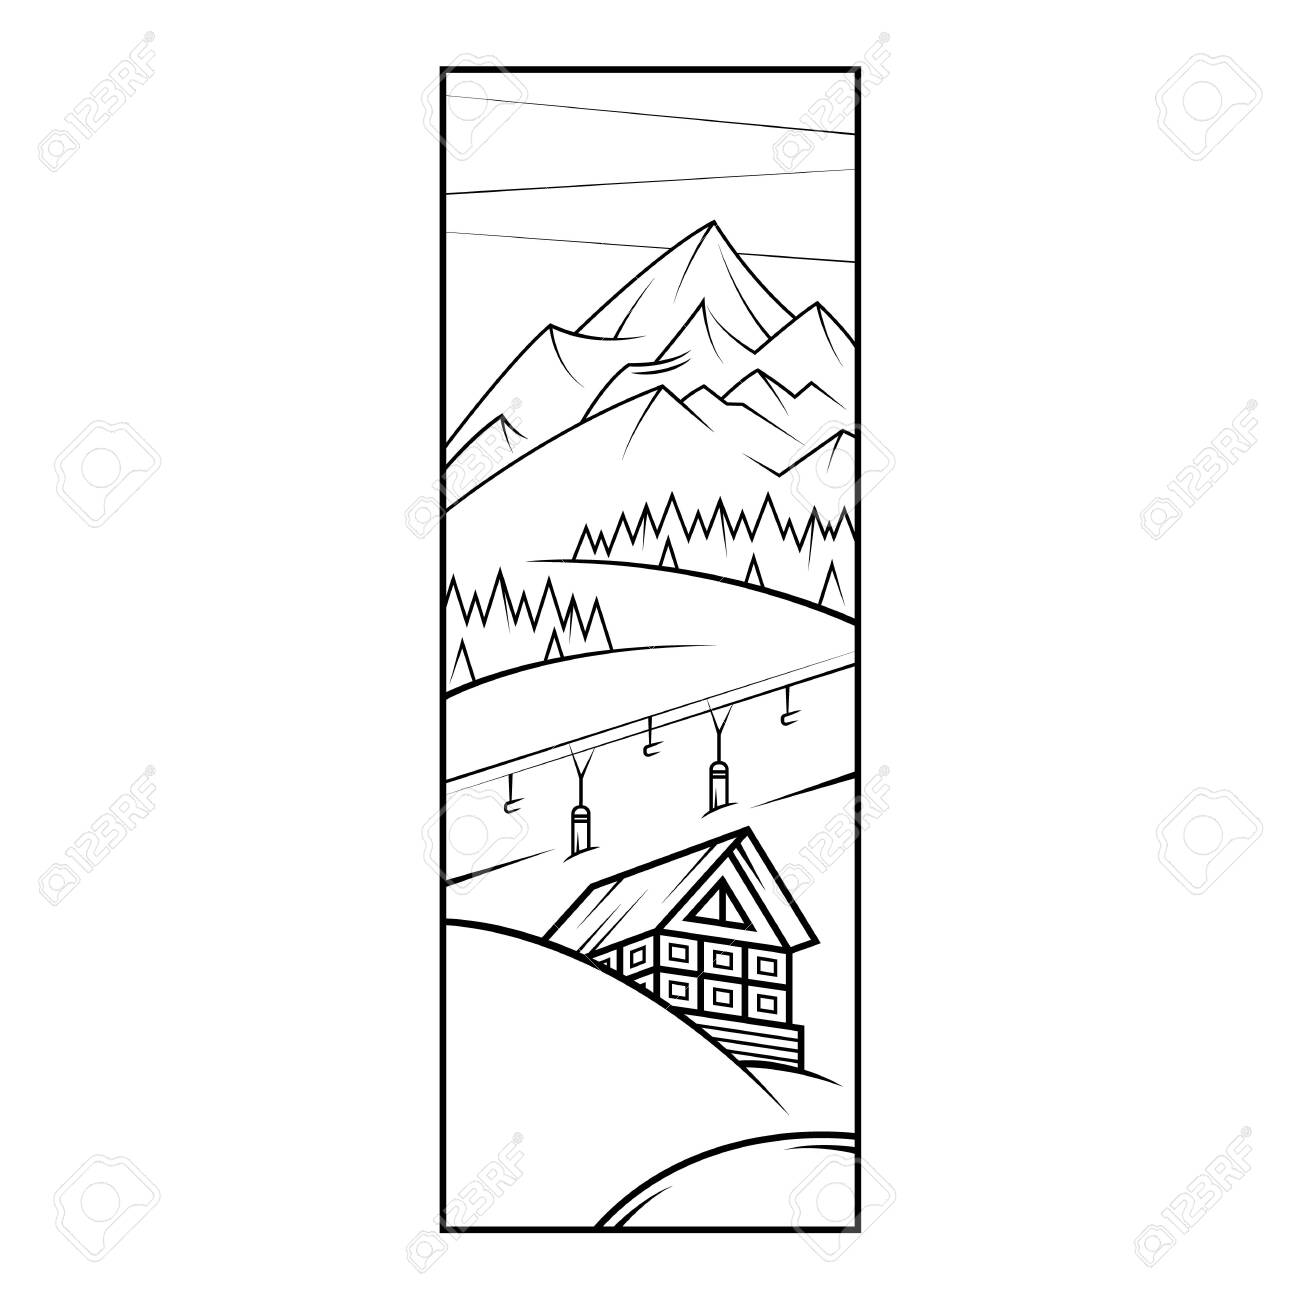 Ski Resort Chalet Mountains In The Snow Ski Lift Flat Minimal Royalty Free Cliparts Vectors And Stock Illustration Image 144843632